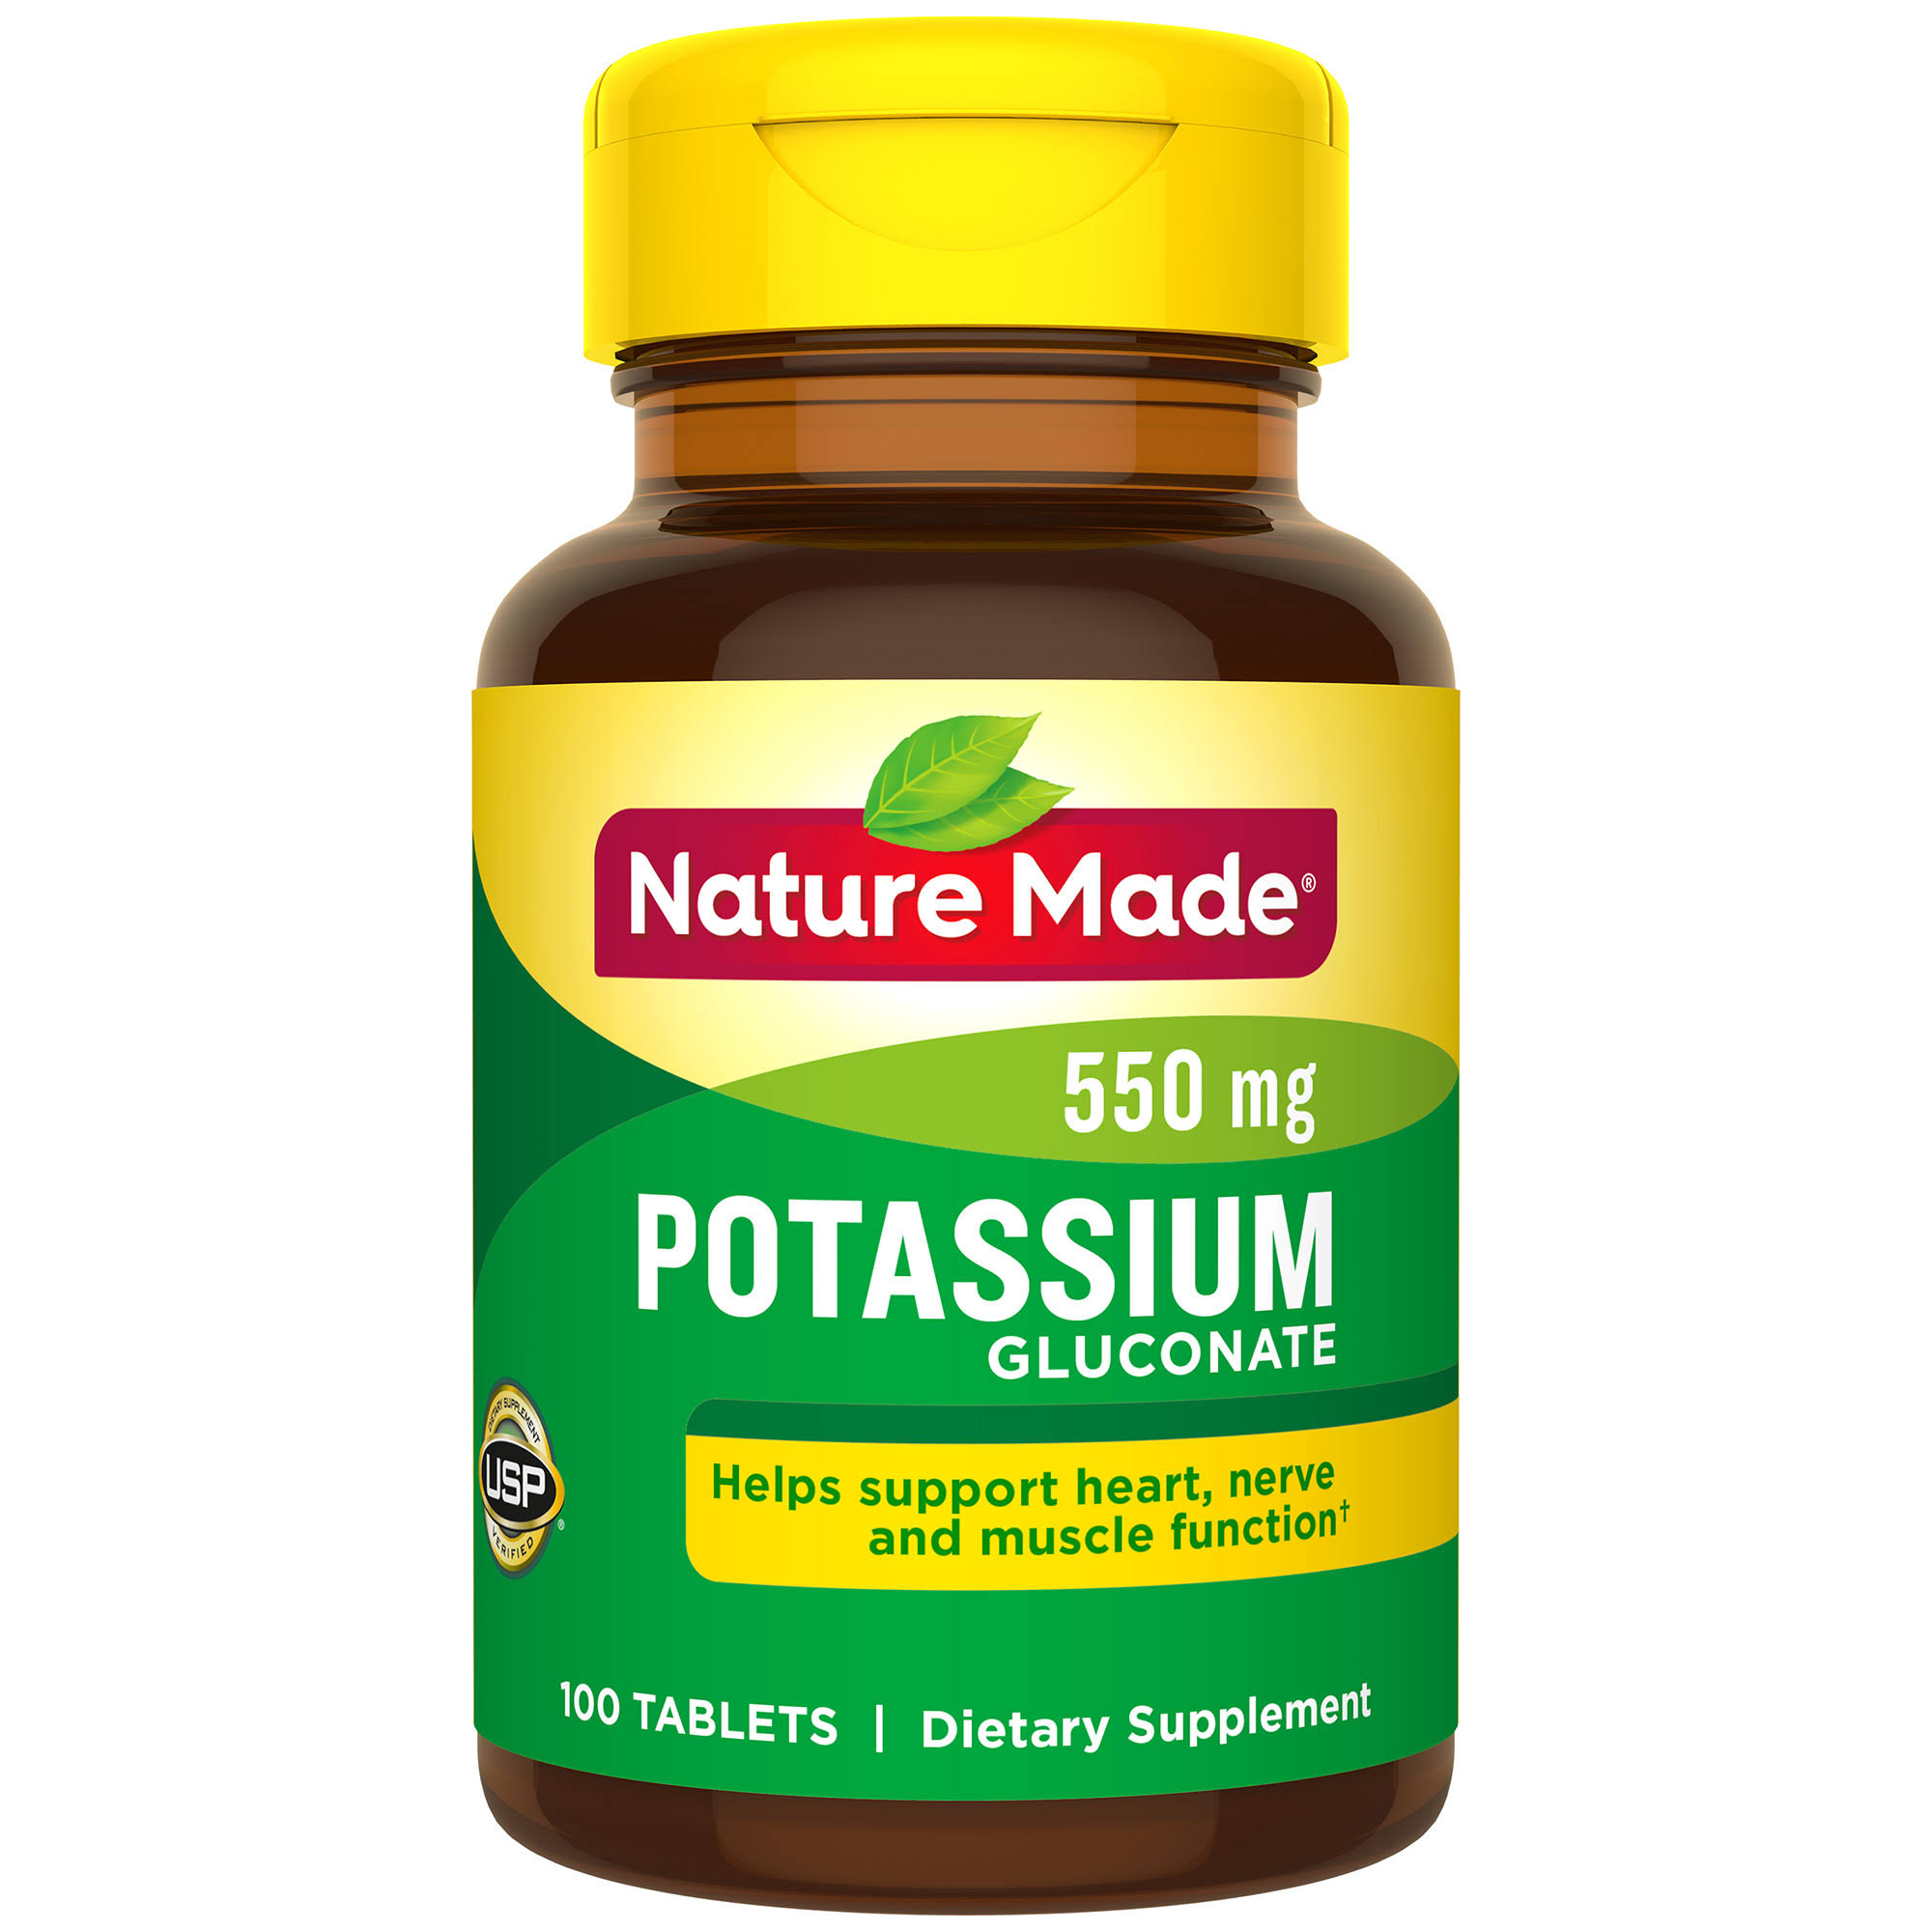 Nature Made Potassium Gluconate Dietary Supplement - 100 Tablets